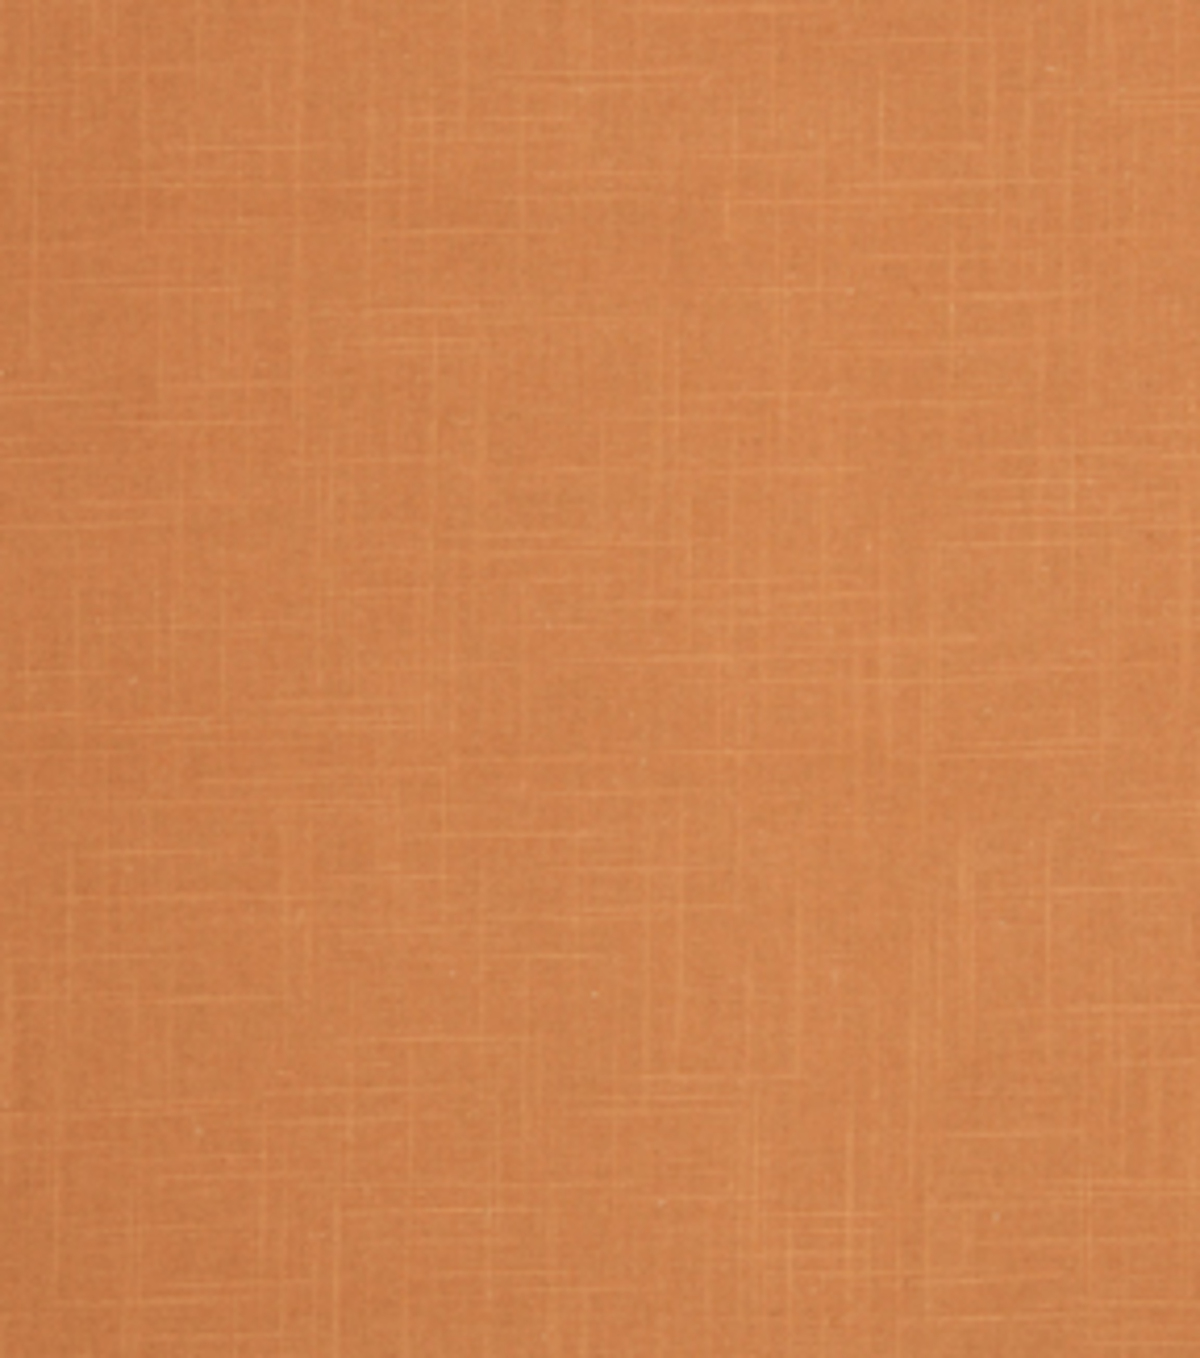 Home Decor 8\u0022x8\u0022 Fabric Swatch-SMC Designs Ohio Melon